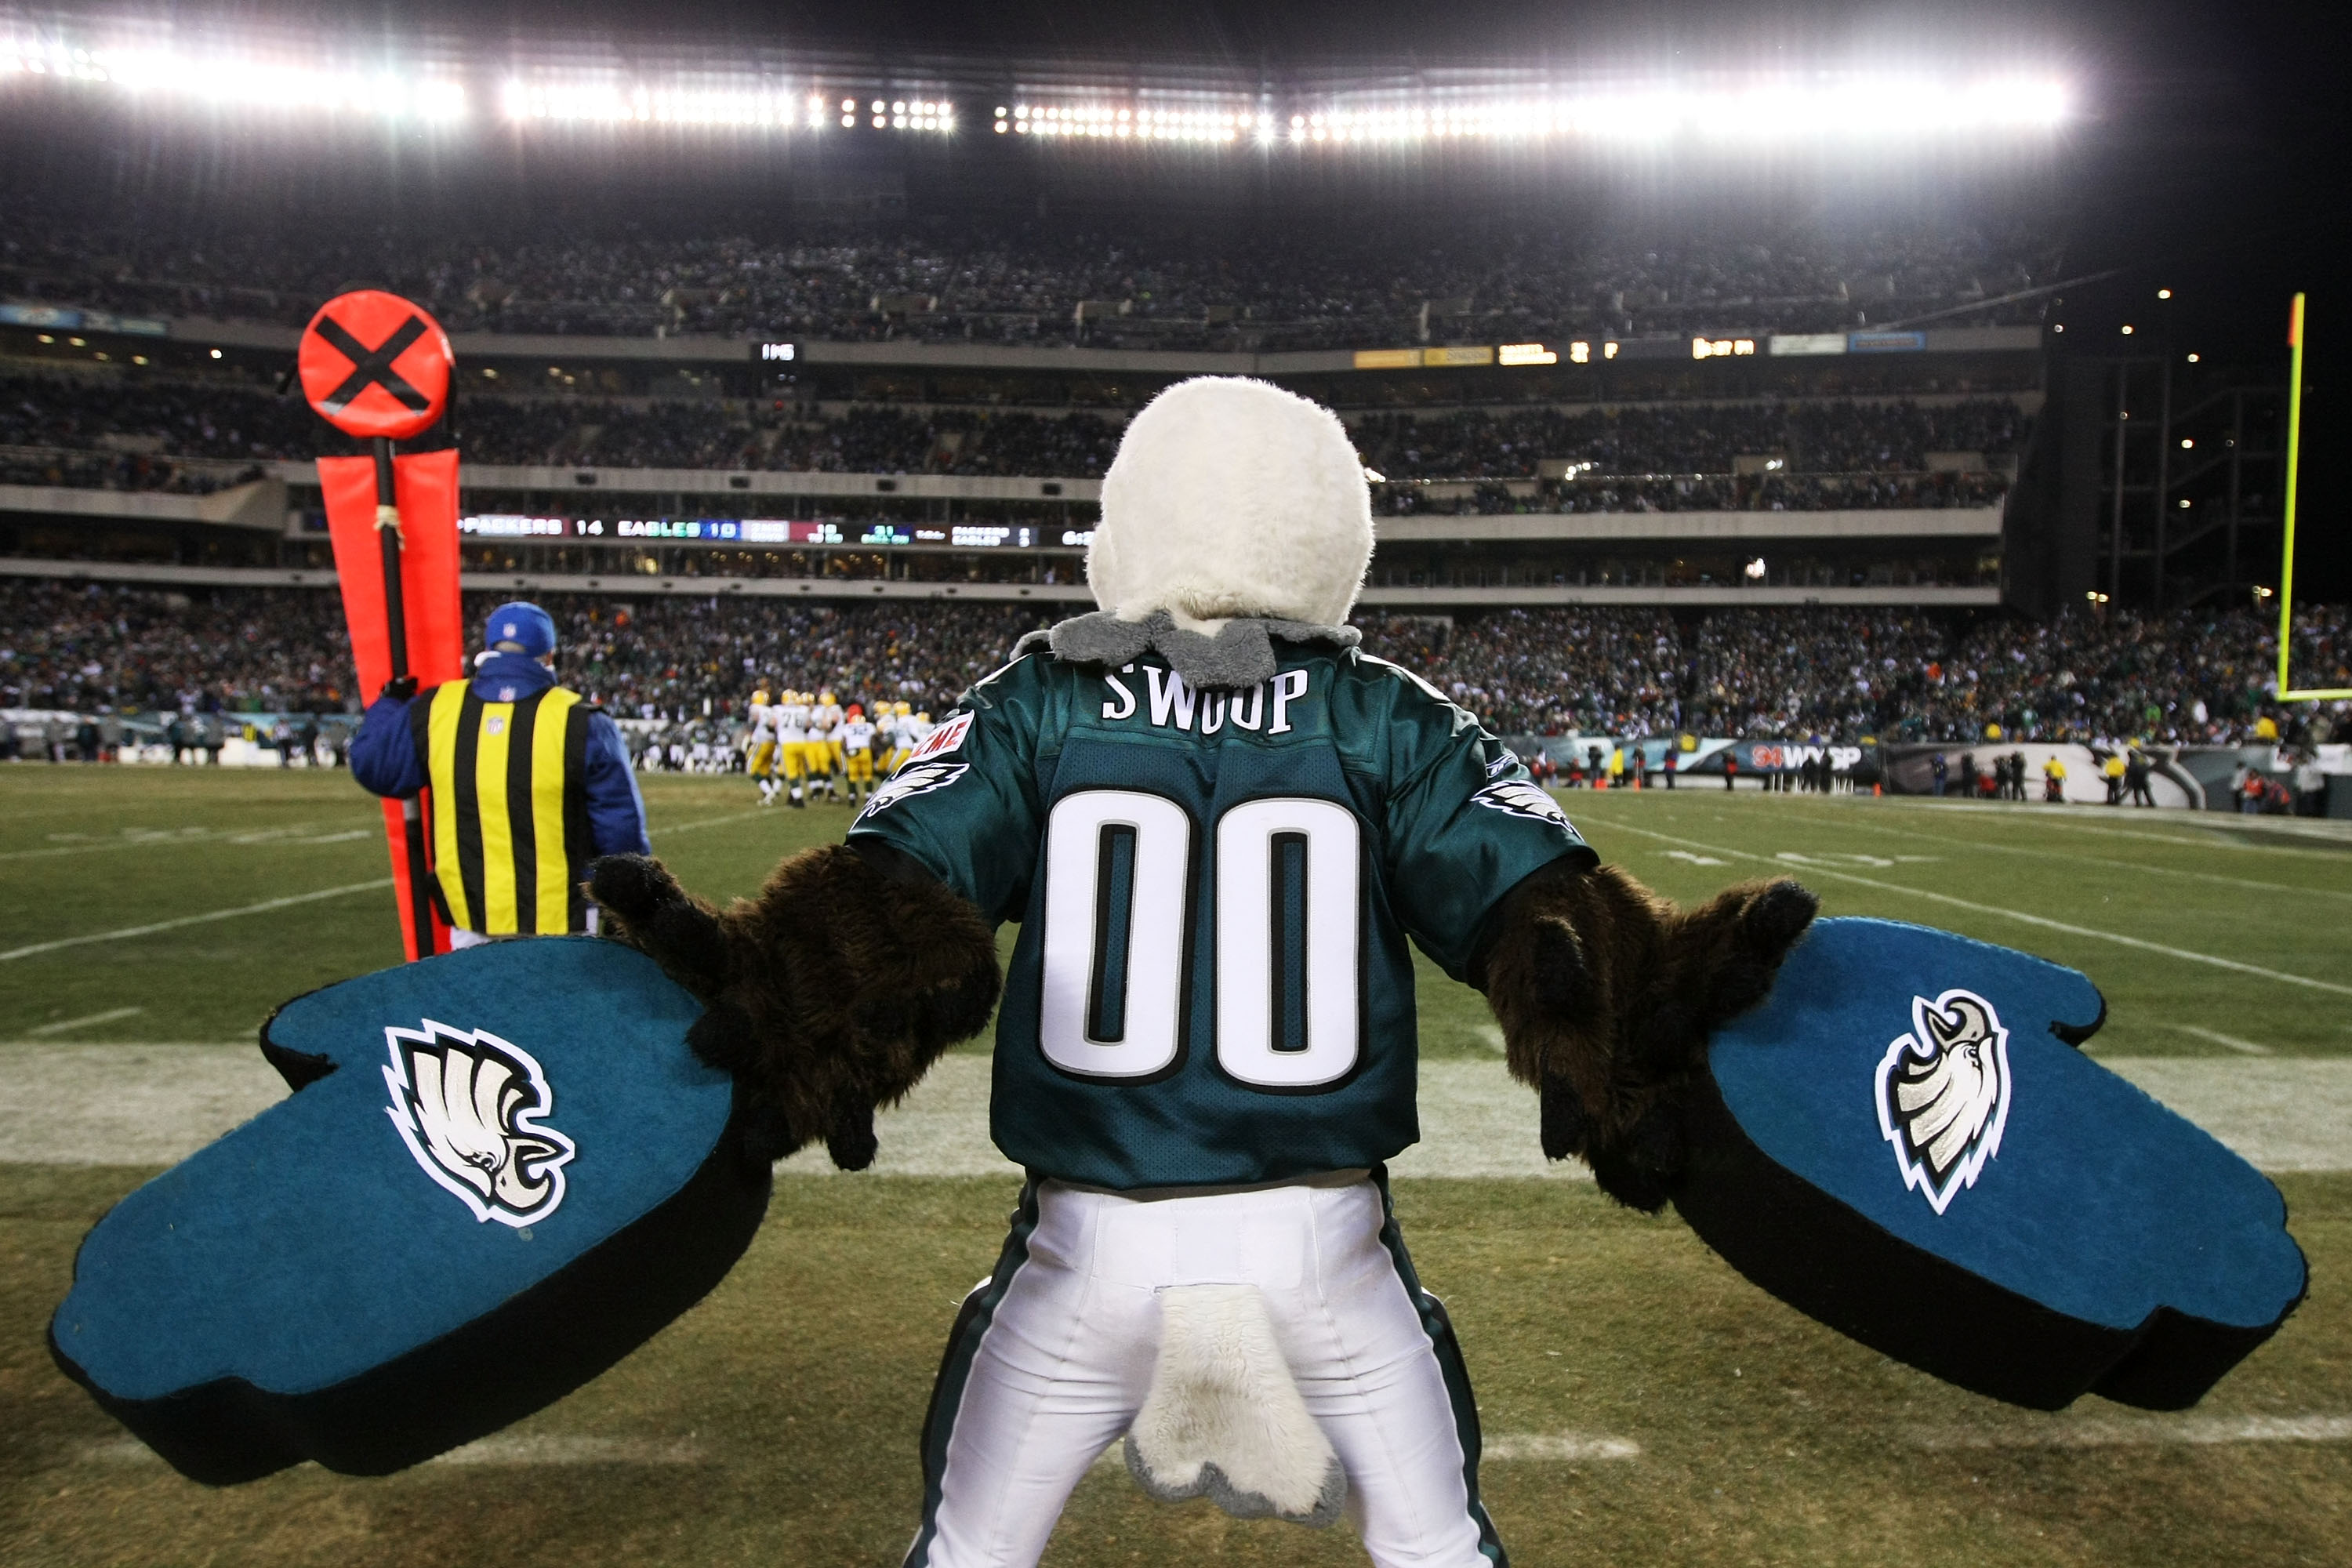 PHILADELPHIA, PA - JANUARY 09:  Philadelphia Eagles mascot Swoop cheers on the sidelines against the Green Bay Packers during the 2011 NFC wild card playoff game at Lincoln Financial Field on January 9, 2011 in Philadelphia, Pennsylvania.  (Photo by Al Be